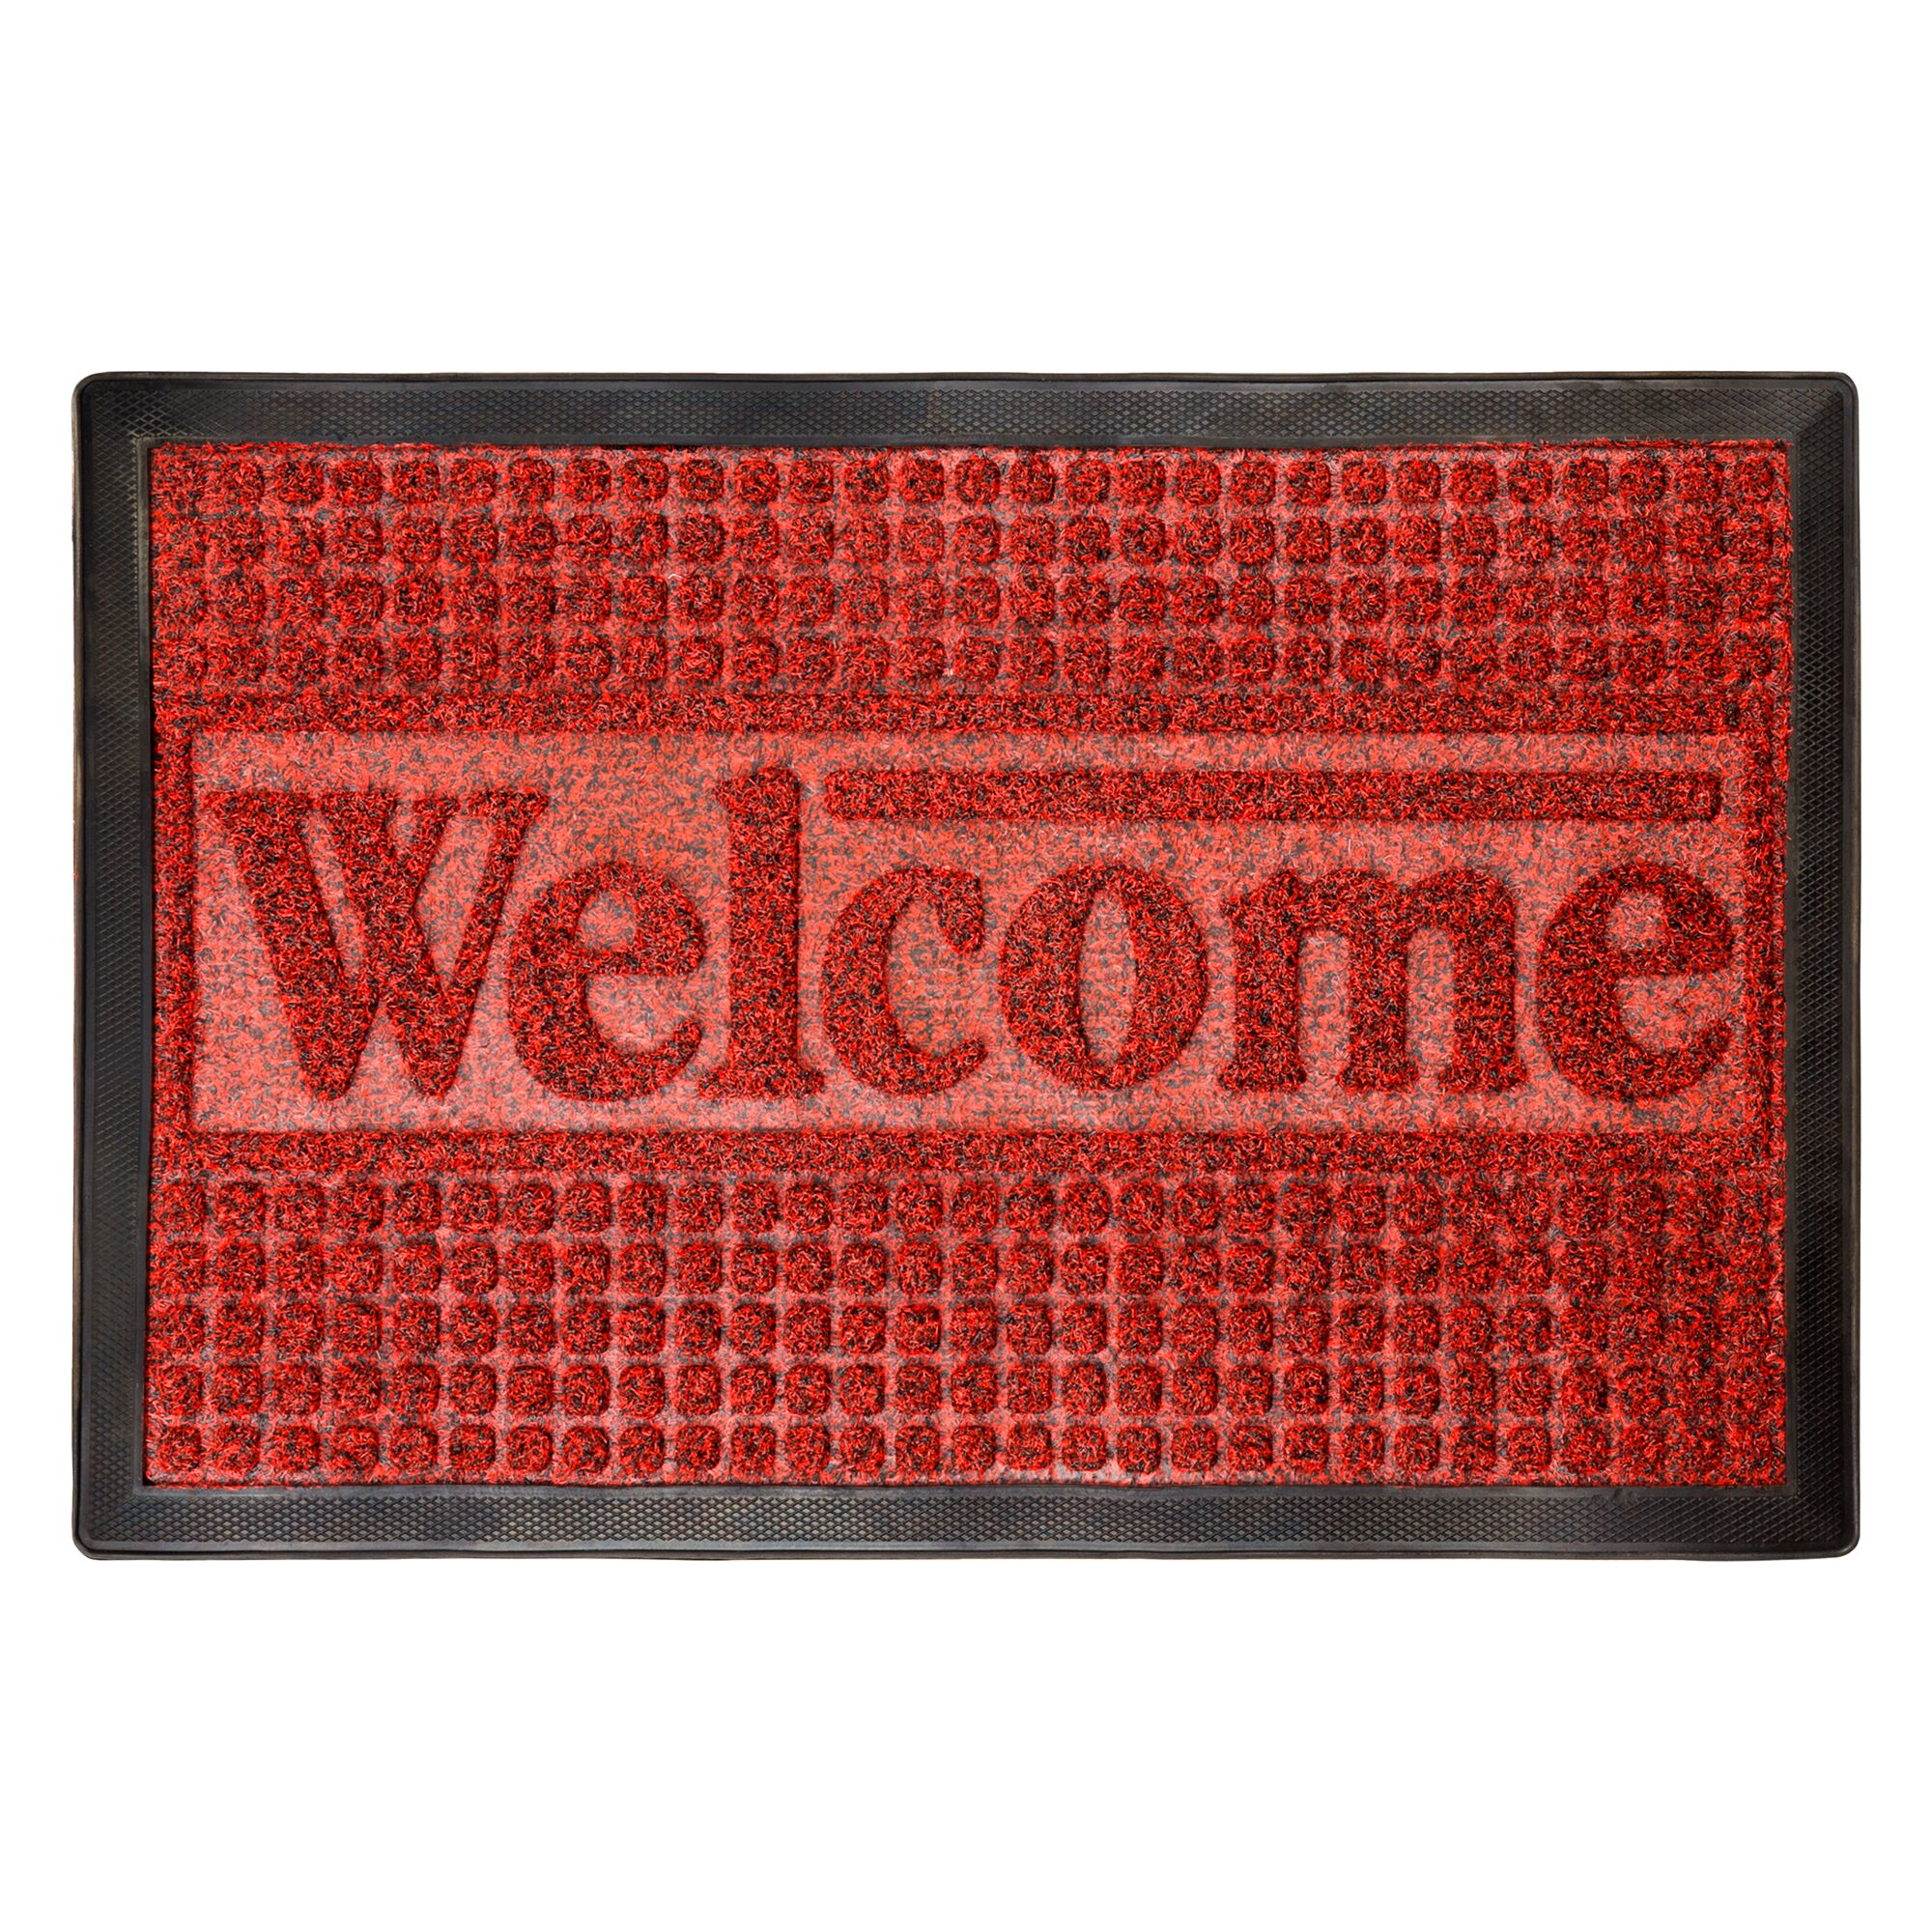 Melgoza Welcome Doormat Mat Size: Rectangle 15.5